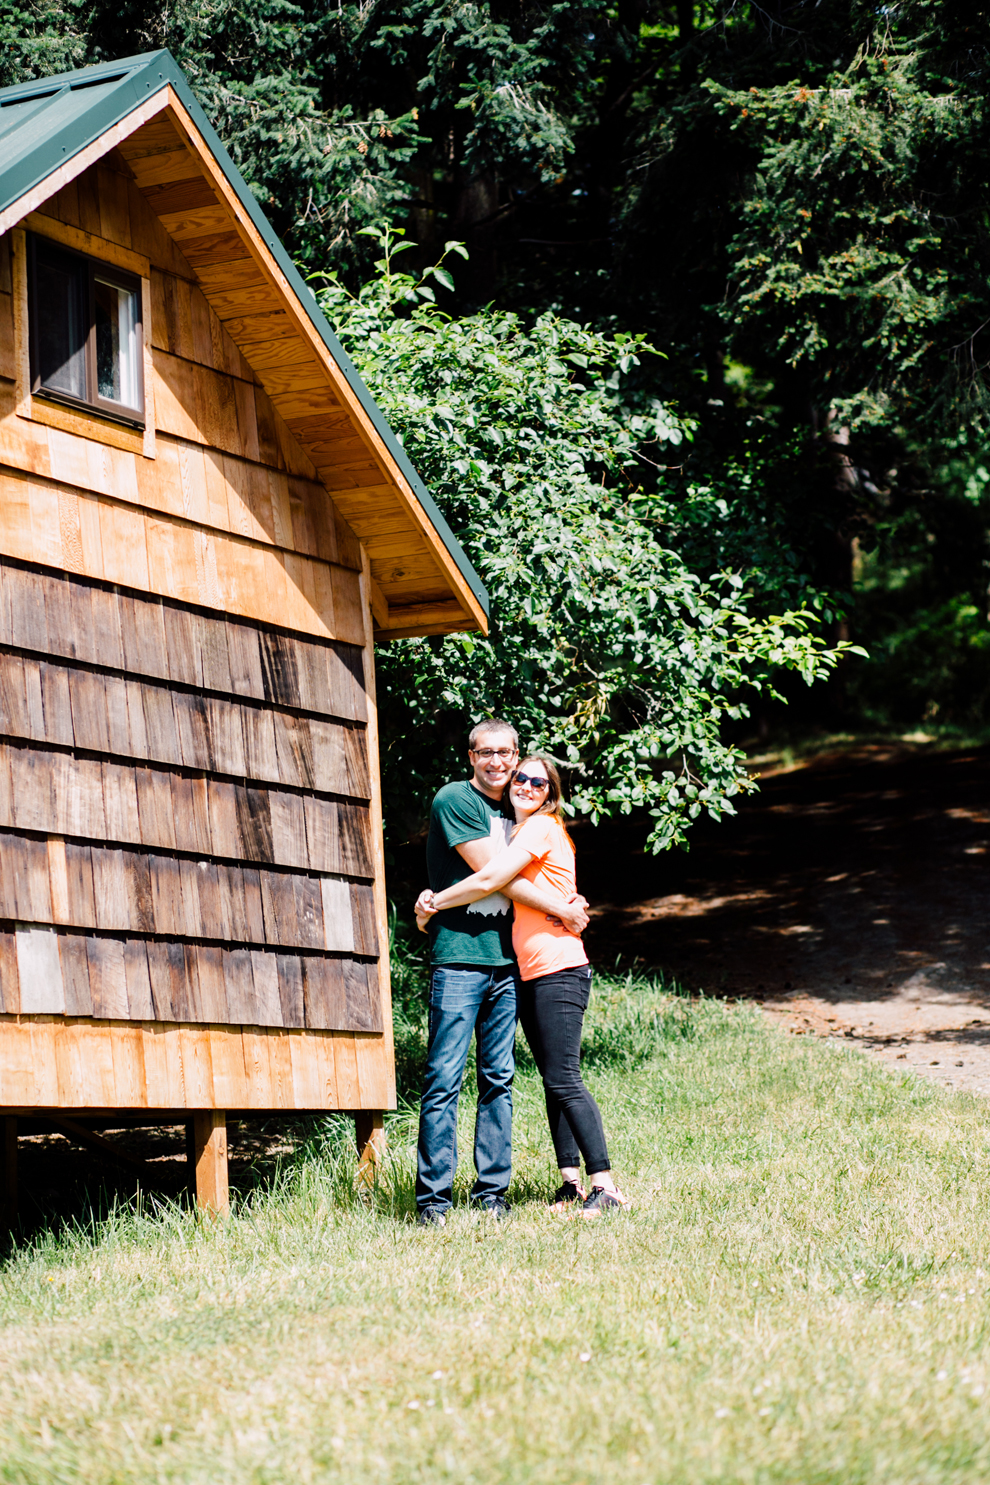 006-orcas-island-engagement-proposal-camp-orkila-katheryn-moran-photography.jpg